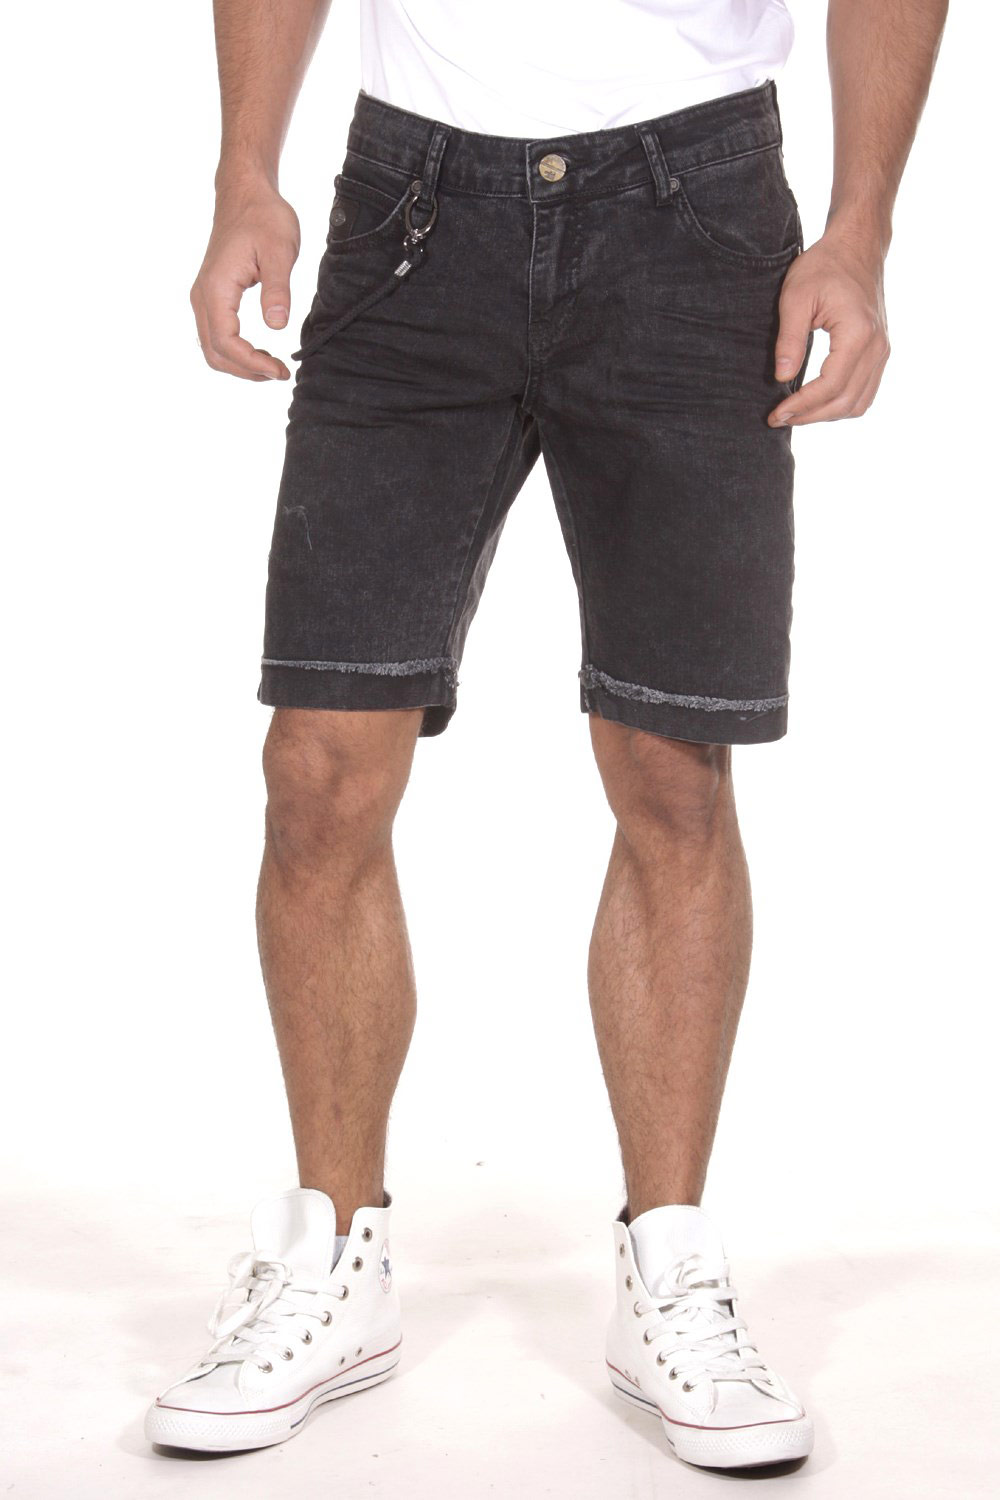 CATCH Denimshorts auf oboy.de